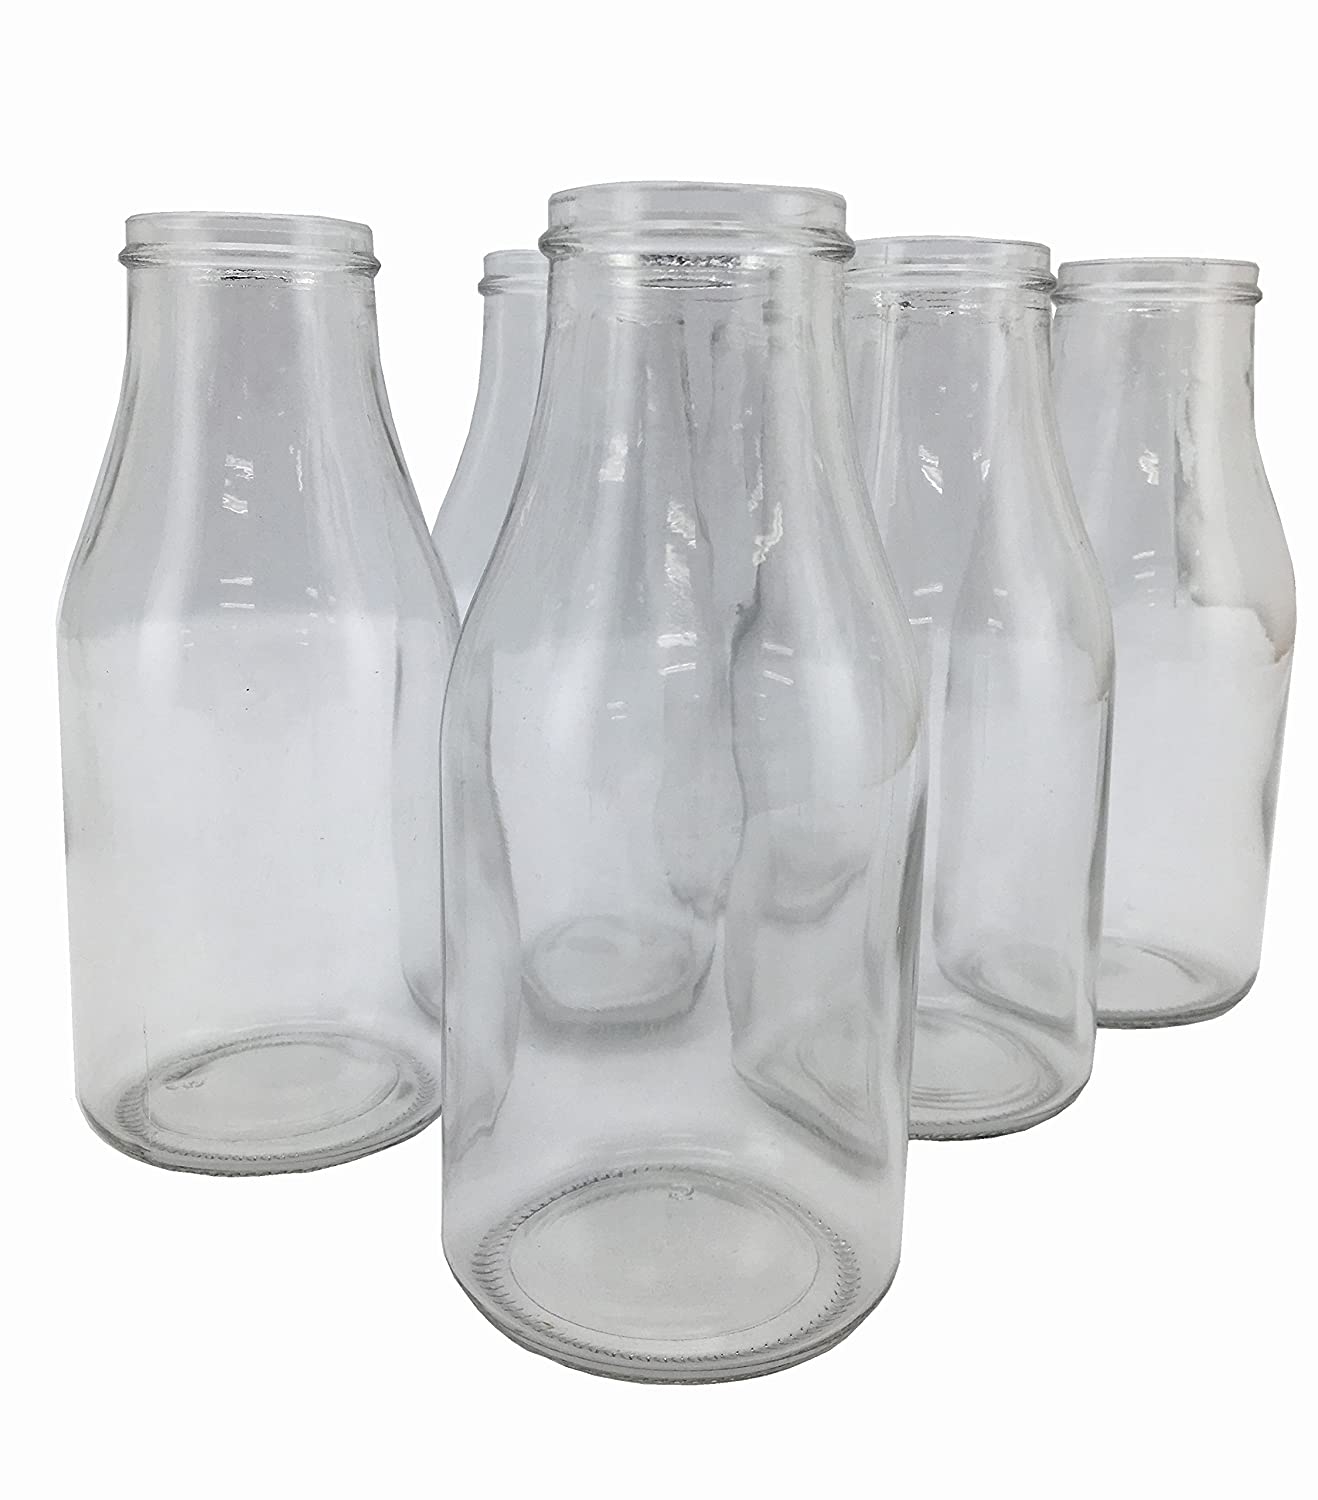 Circleware Valley Farm Glass Milk Bottles/Drinking Glasses, 16 Ounce, Set of 6 69010